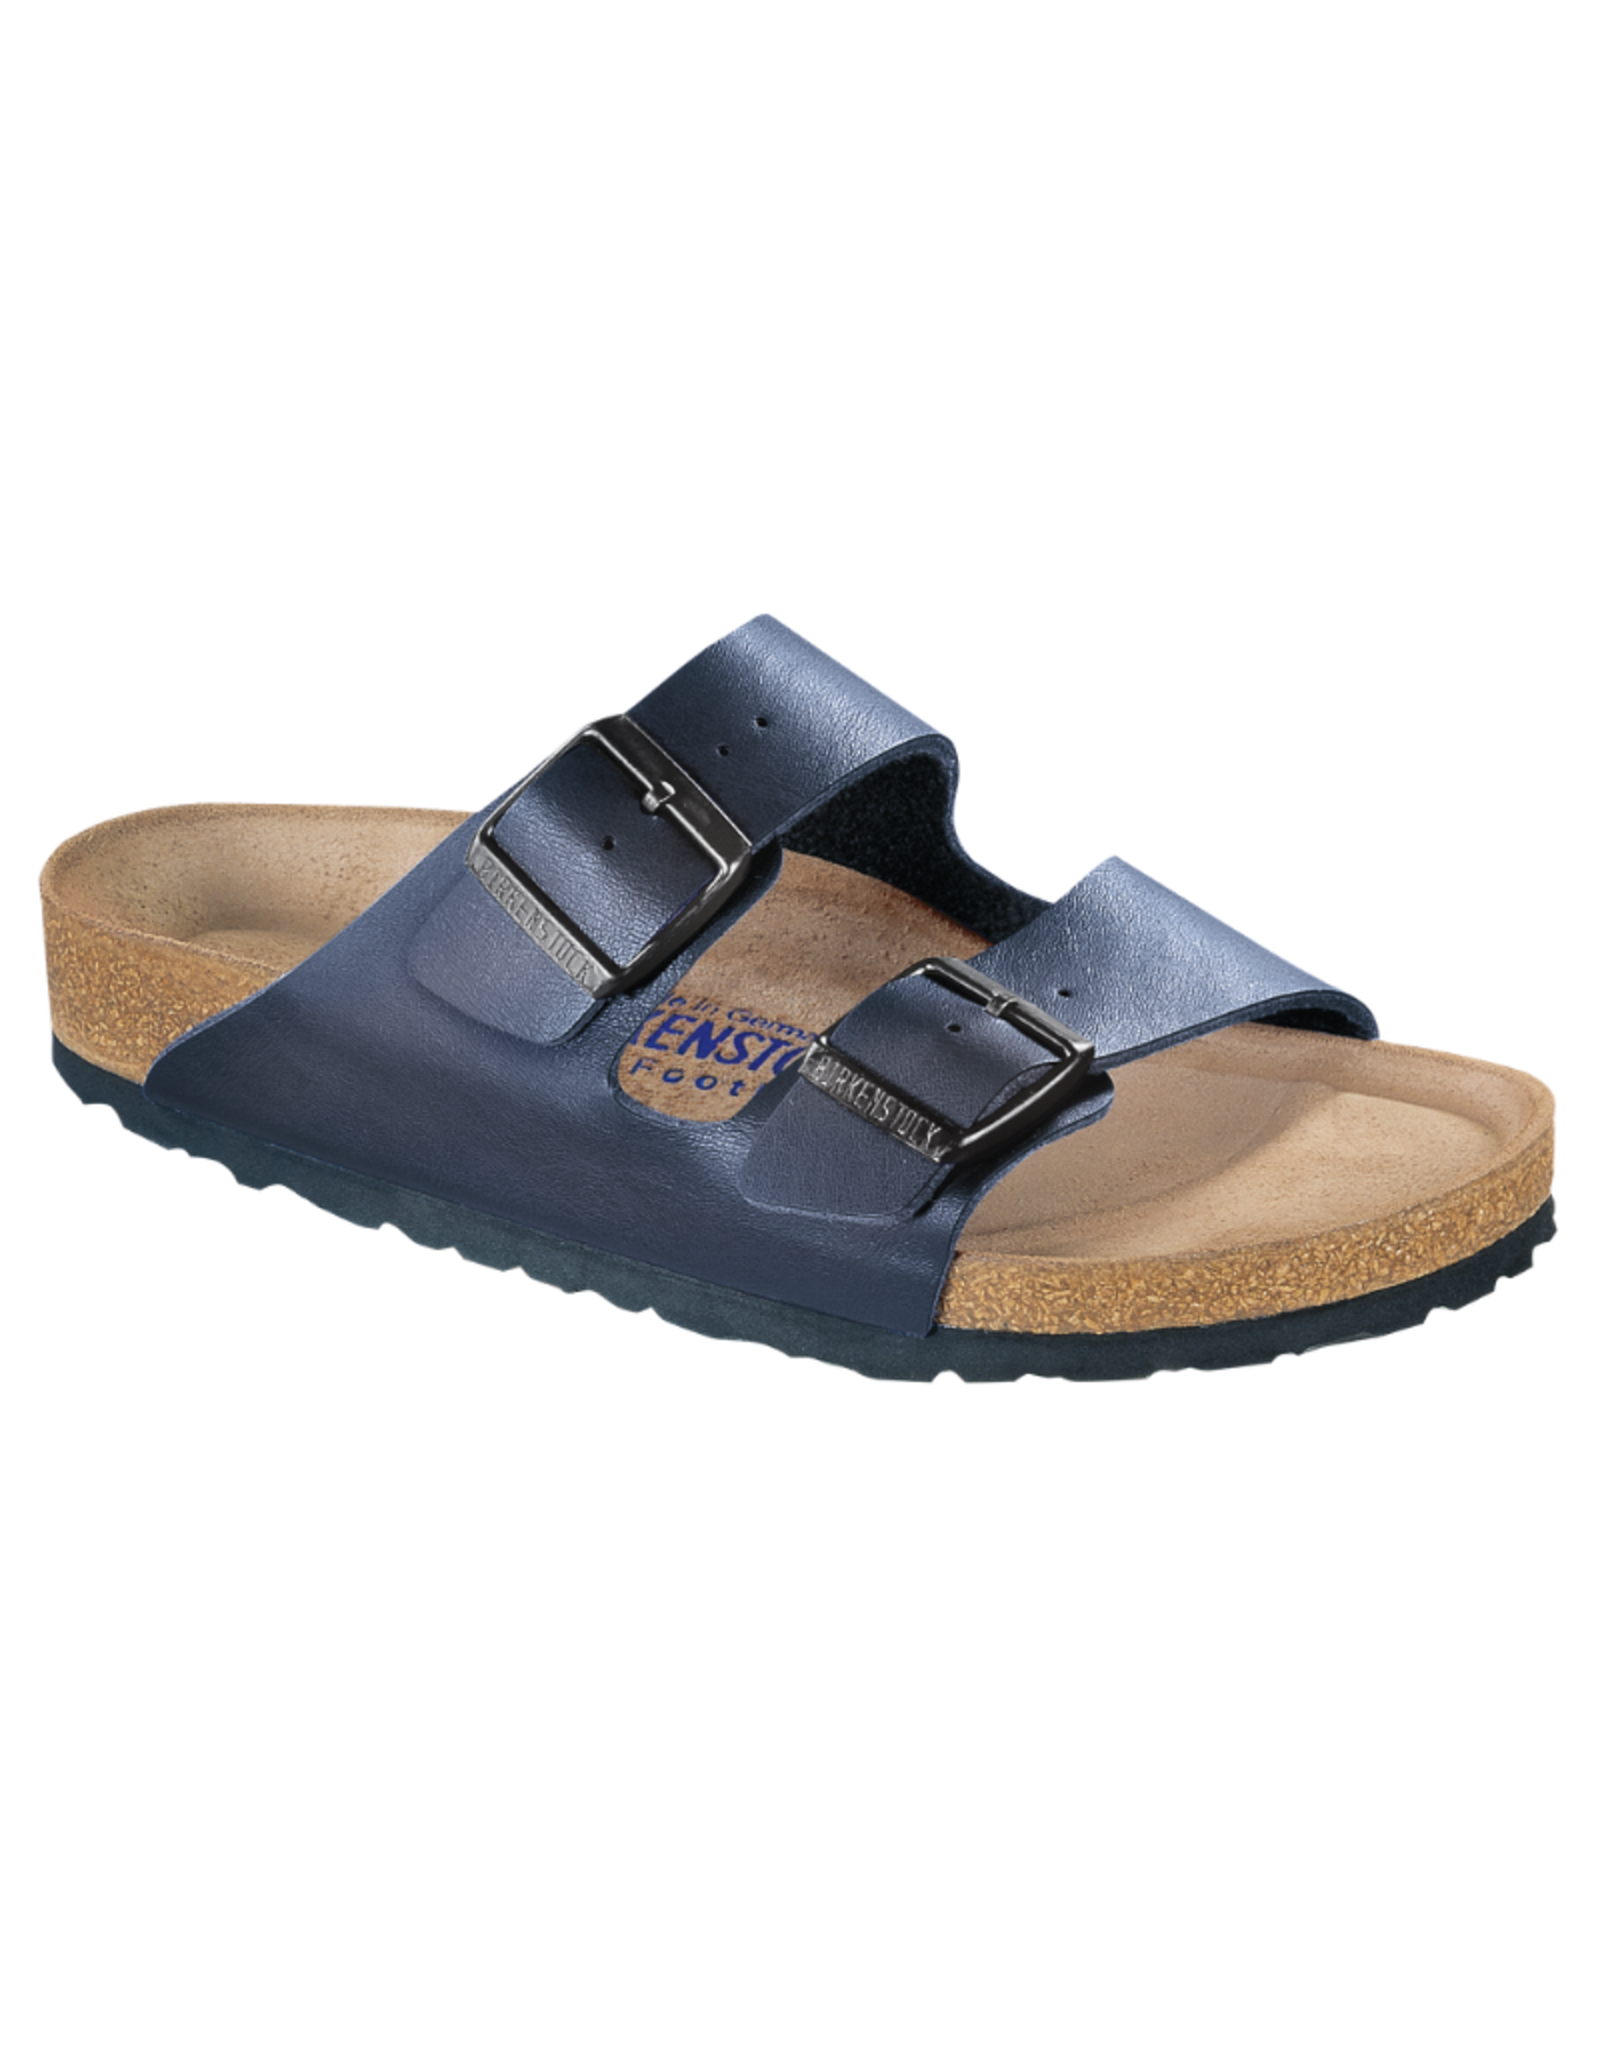 Arizona Blue Birko-Flor Soft Footbed